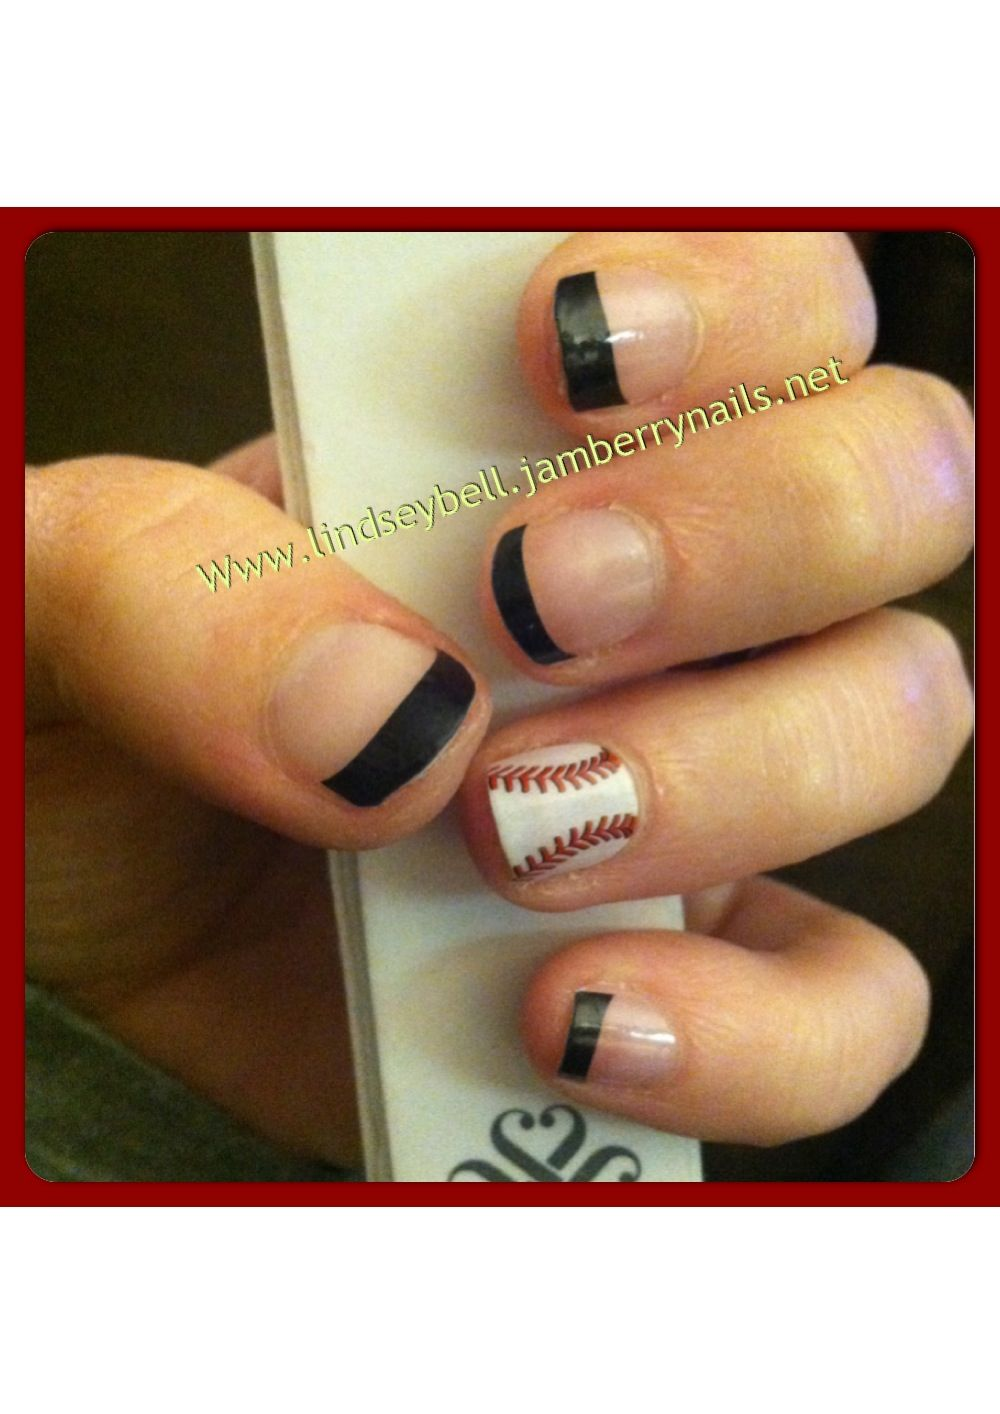 Black French tips & Curve Ball! Www.lindseybell.jamberrynails.net